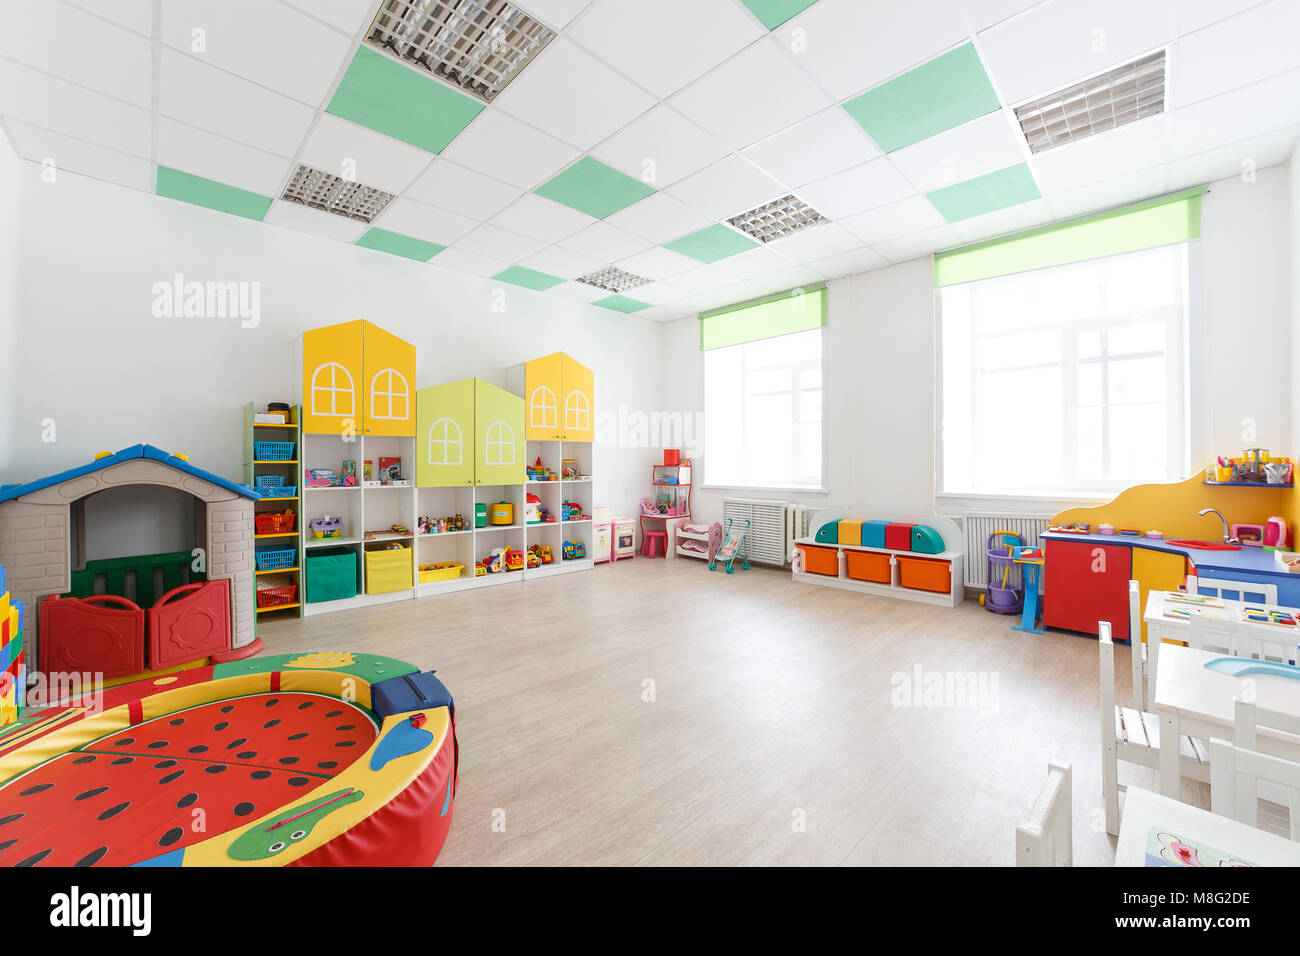 Spacious white game room in the kindergarten with toys, two large windows and tables for classes. - Stock Image